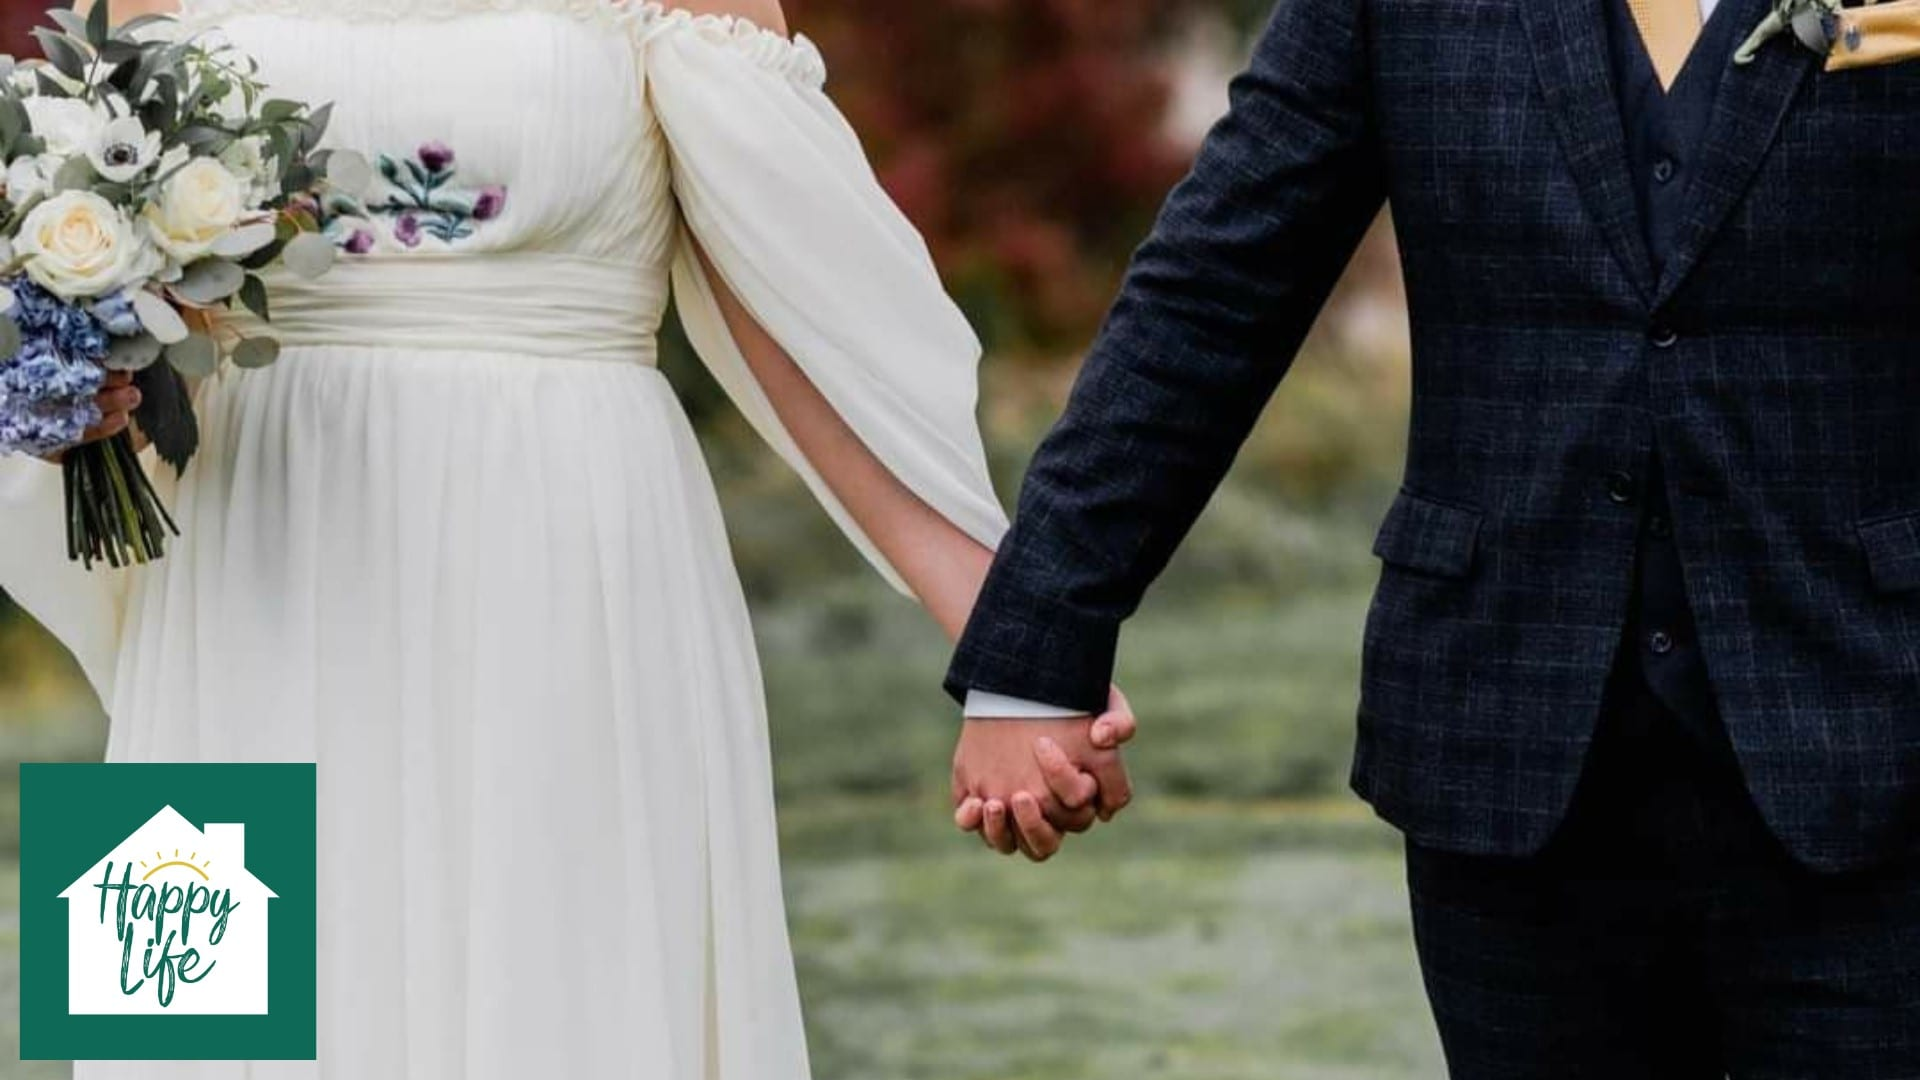 A newly married husband and wife hold hands as they stand side by side.